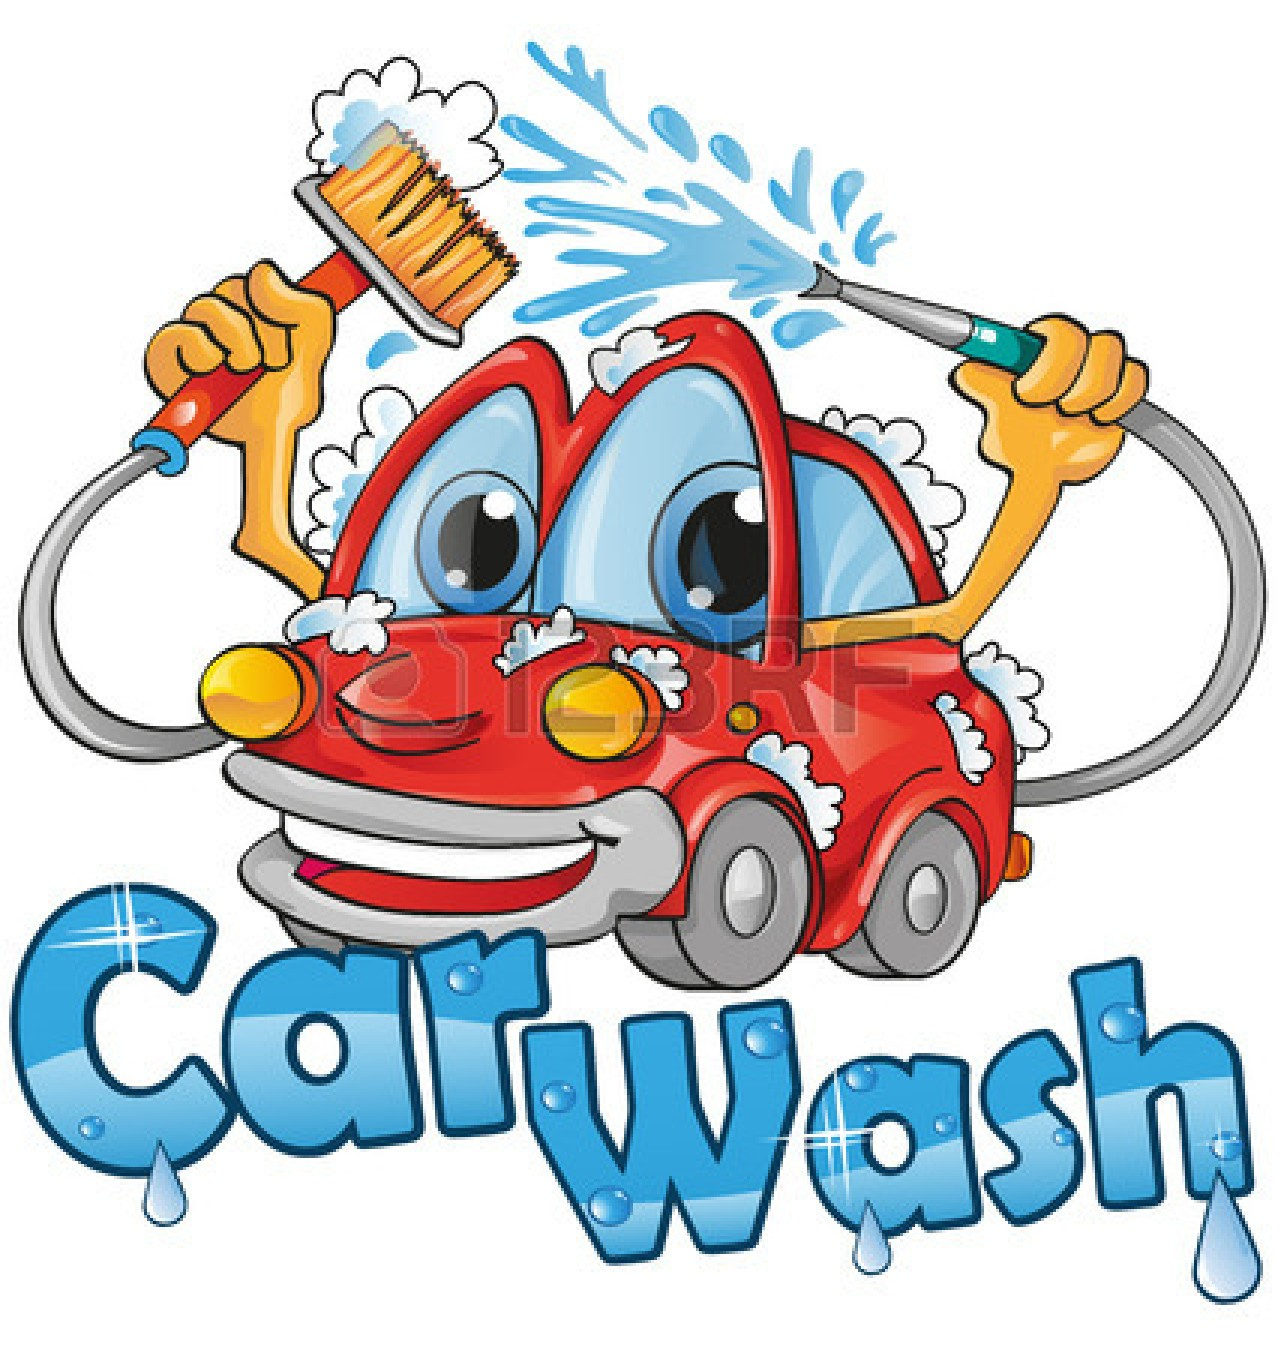 Car in automatic car wash track clipart picture stock Car in automatic car wash clipart - ClipartFest picture stock